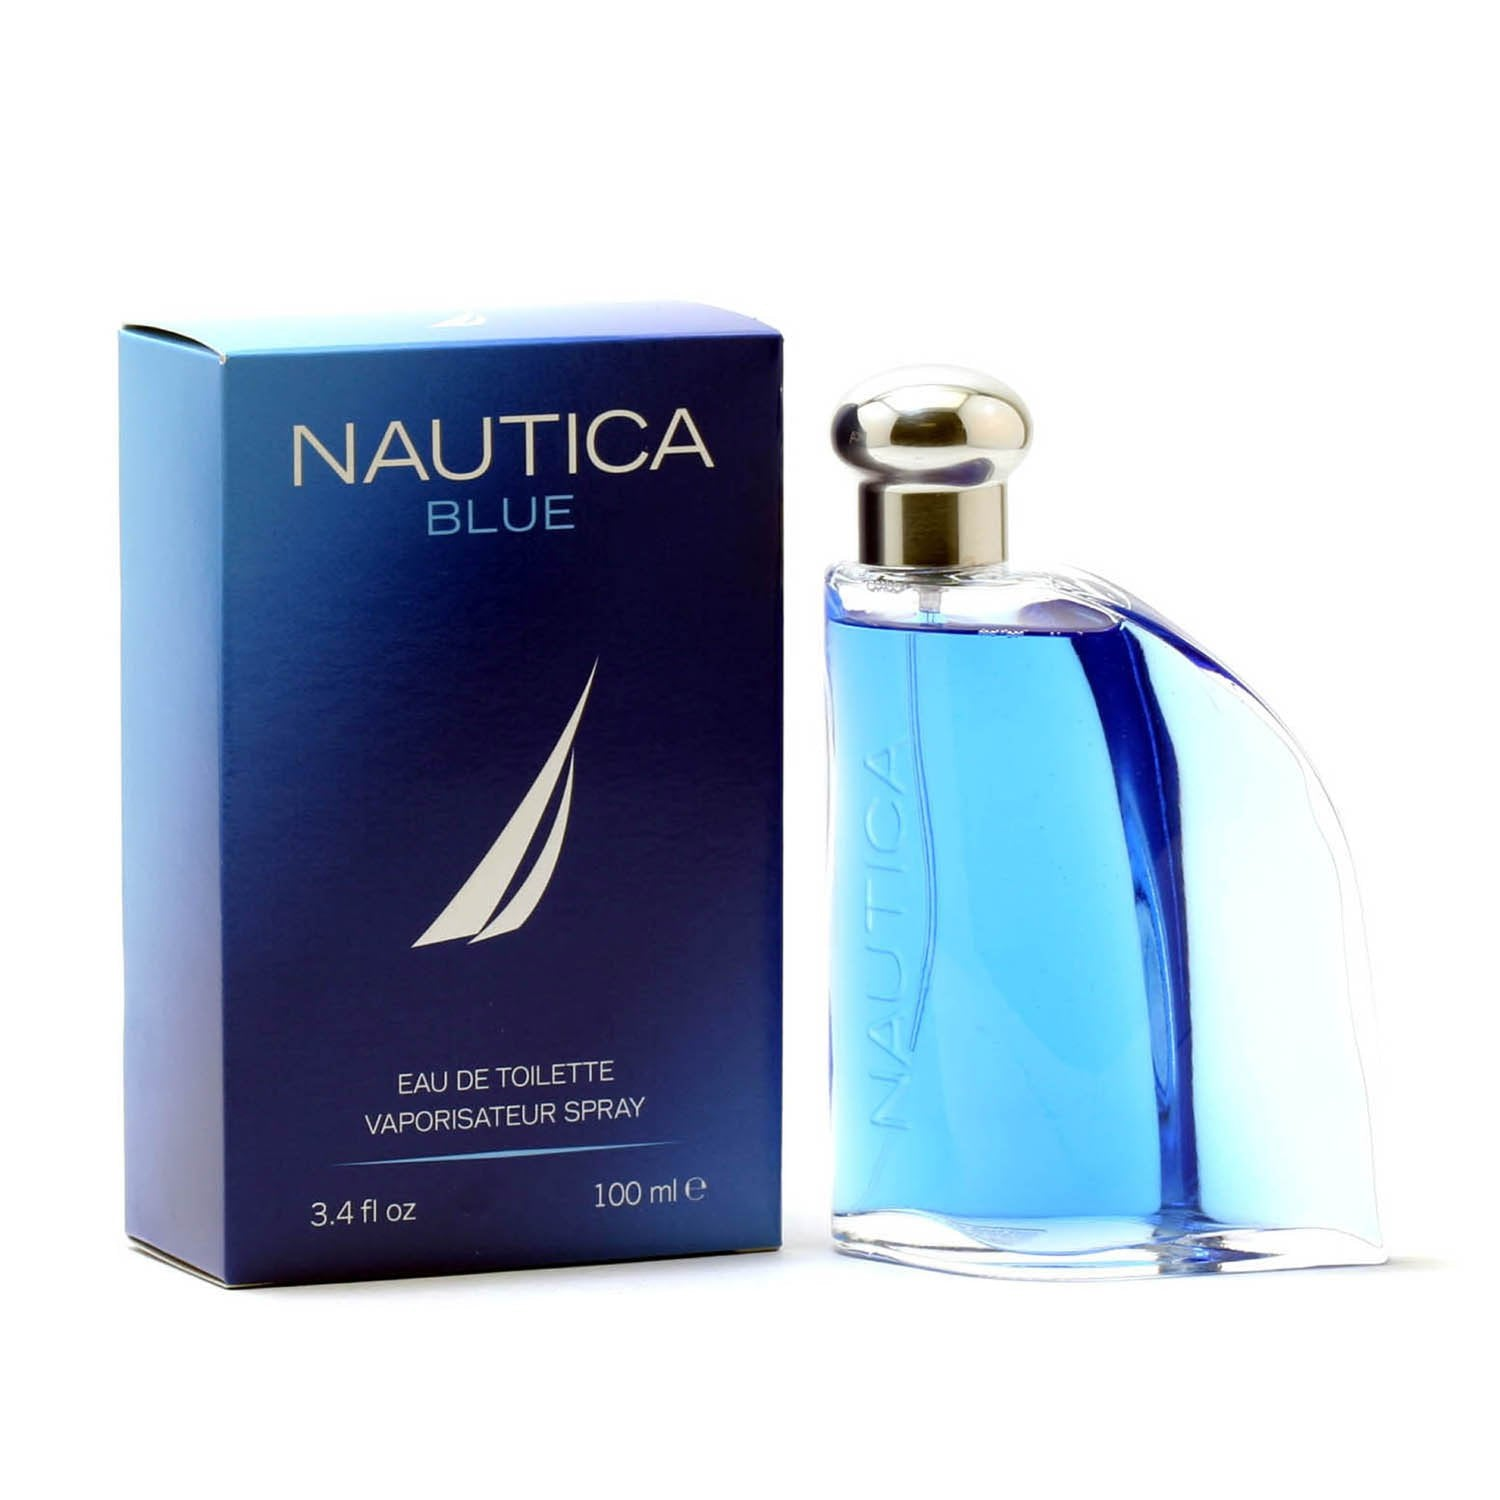 Cologne - NAUTICA BLUE FOR MEN - EAU DE TOILETTE SPRAY, 3.4 OZ